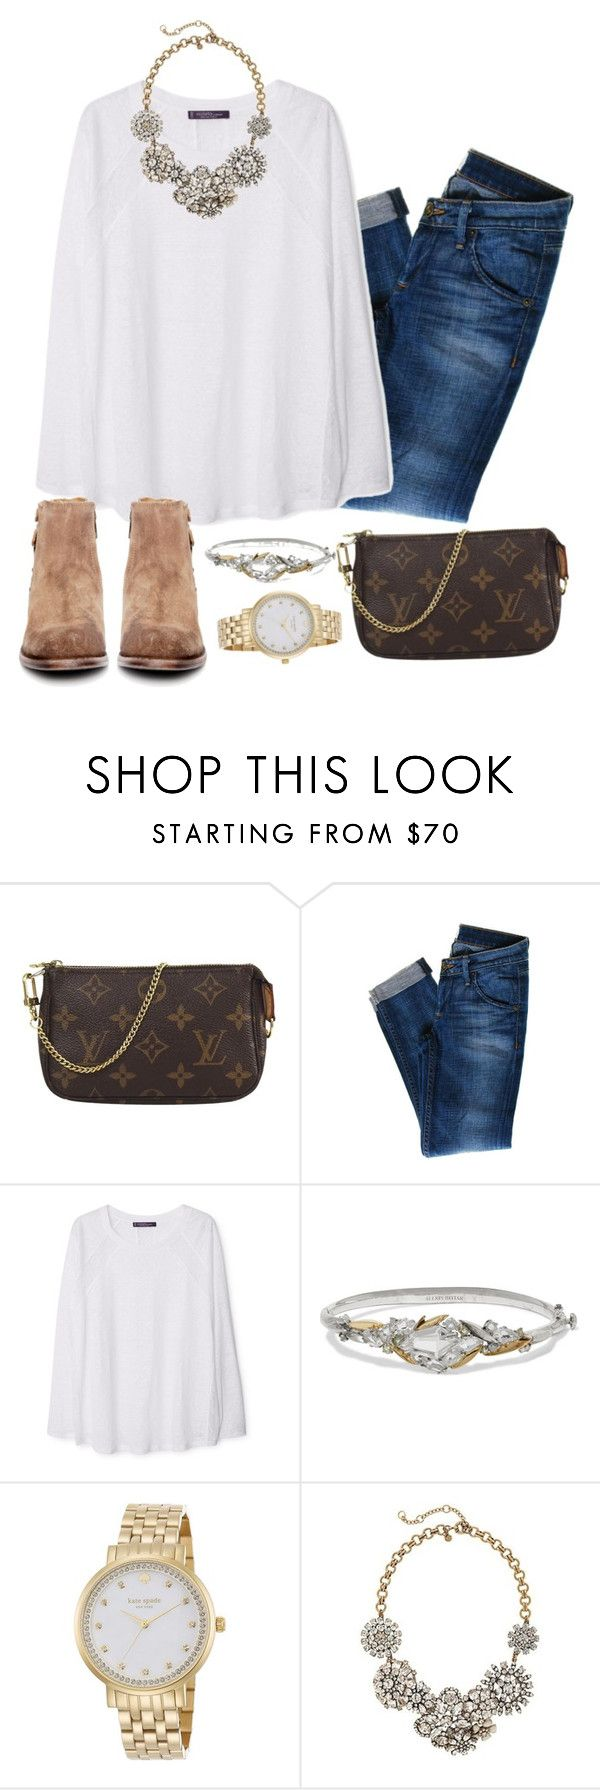 """""""Classy girl"""" by preppygirlusa ❤ liked on Polyvore featuring Louis Vuitton, Hudson Jeans, MANGO, Alexis Bittar, Kate Spade, J.Crew, H by Hudson, women's clothing, women and female"""